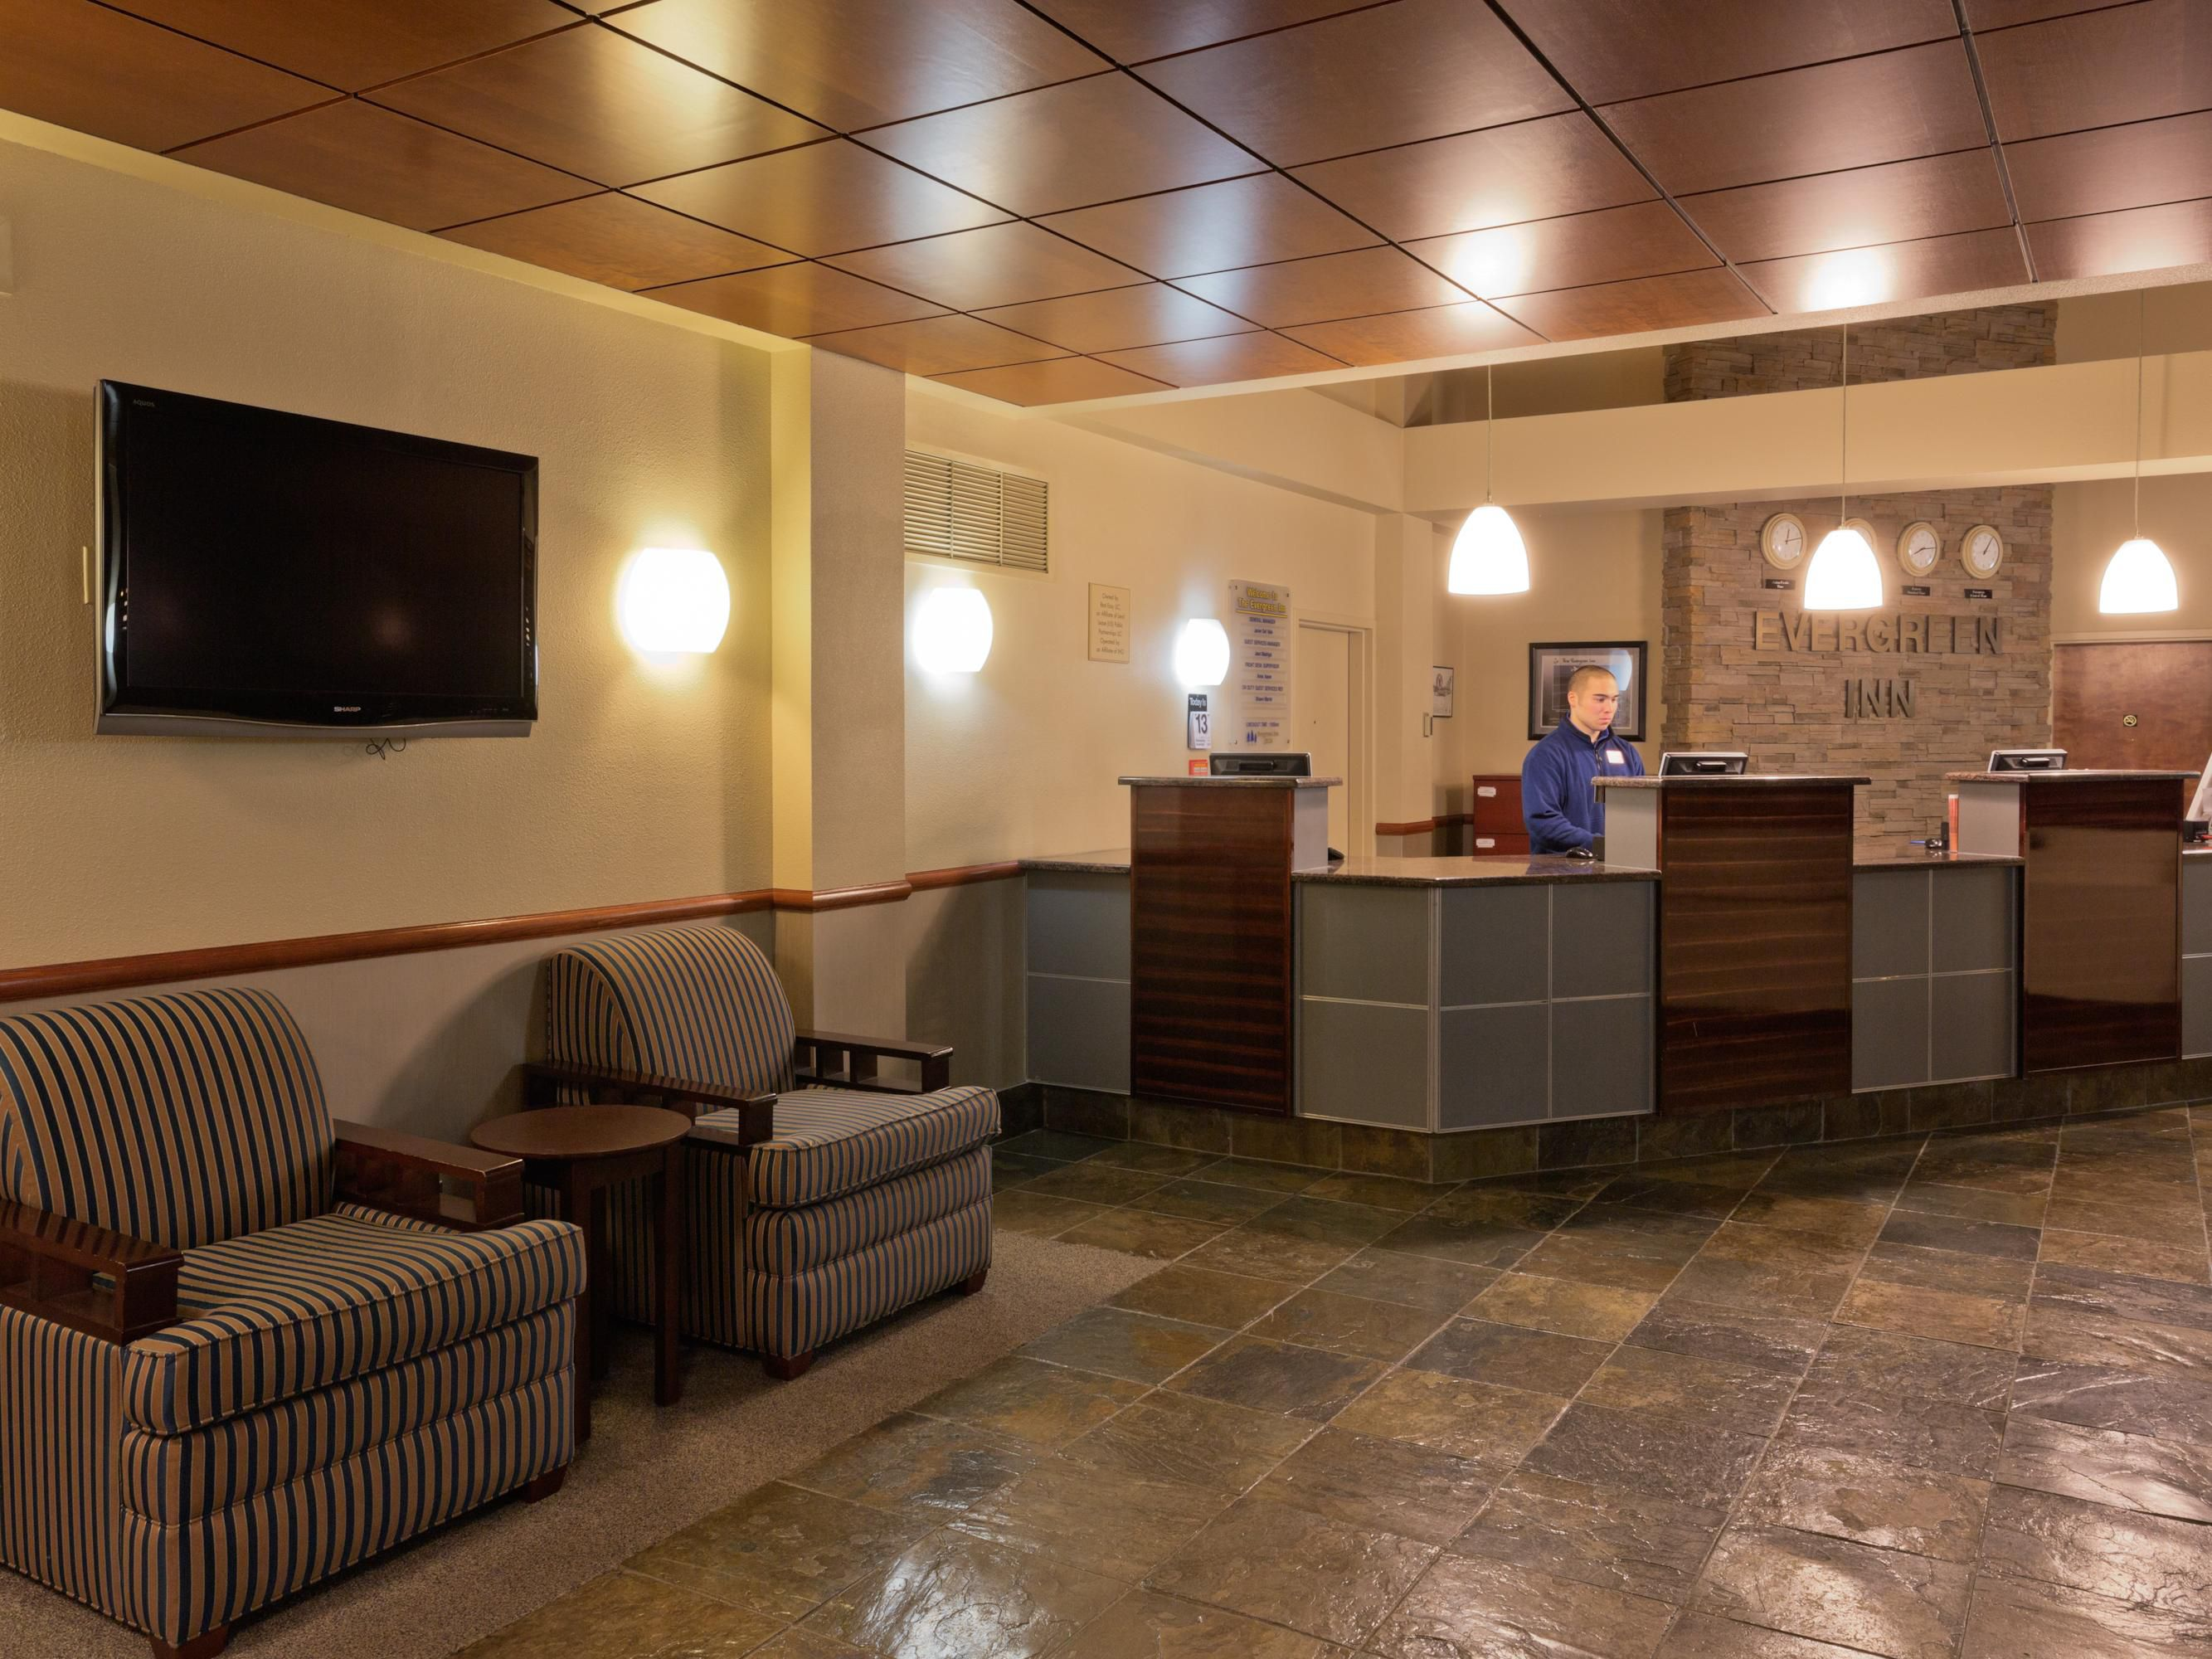 IHG Military Hotel Ft. Lewis-McChord - Evergreen Inn Lobby